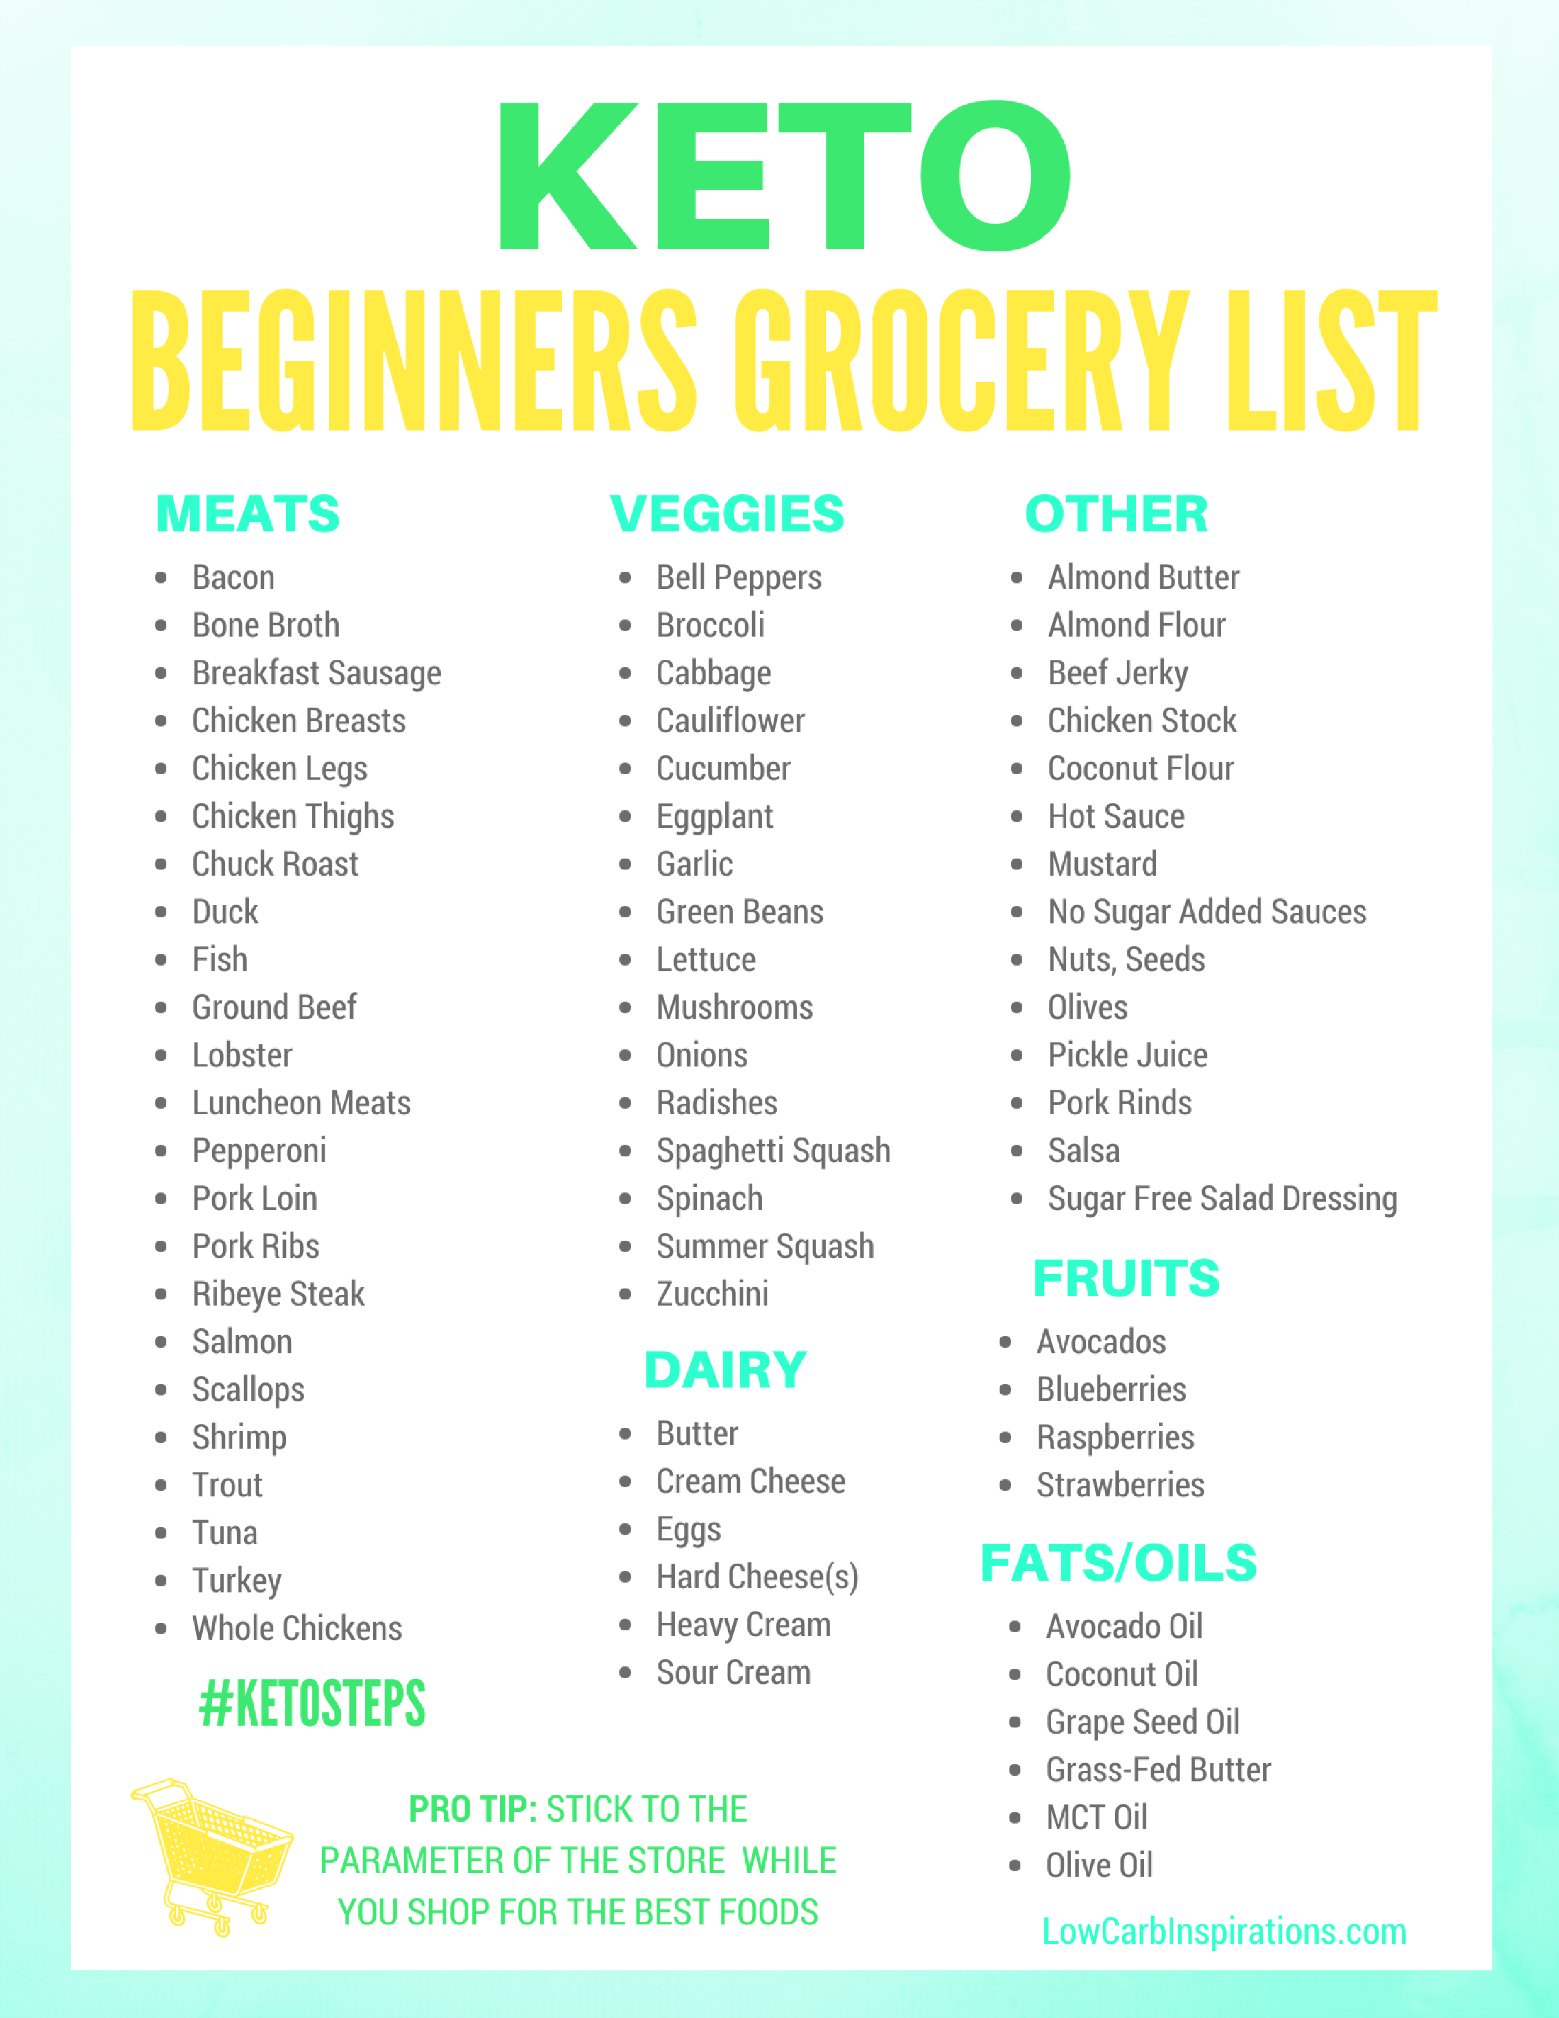 Atkins Diet Meal Plan And Shopping List